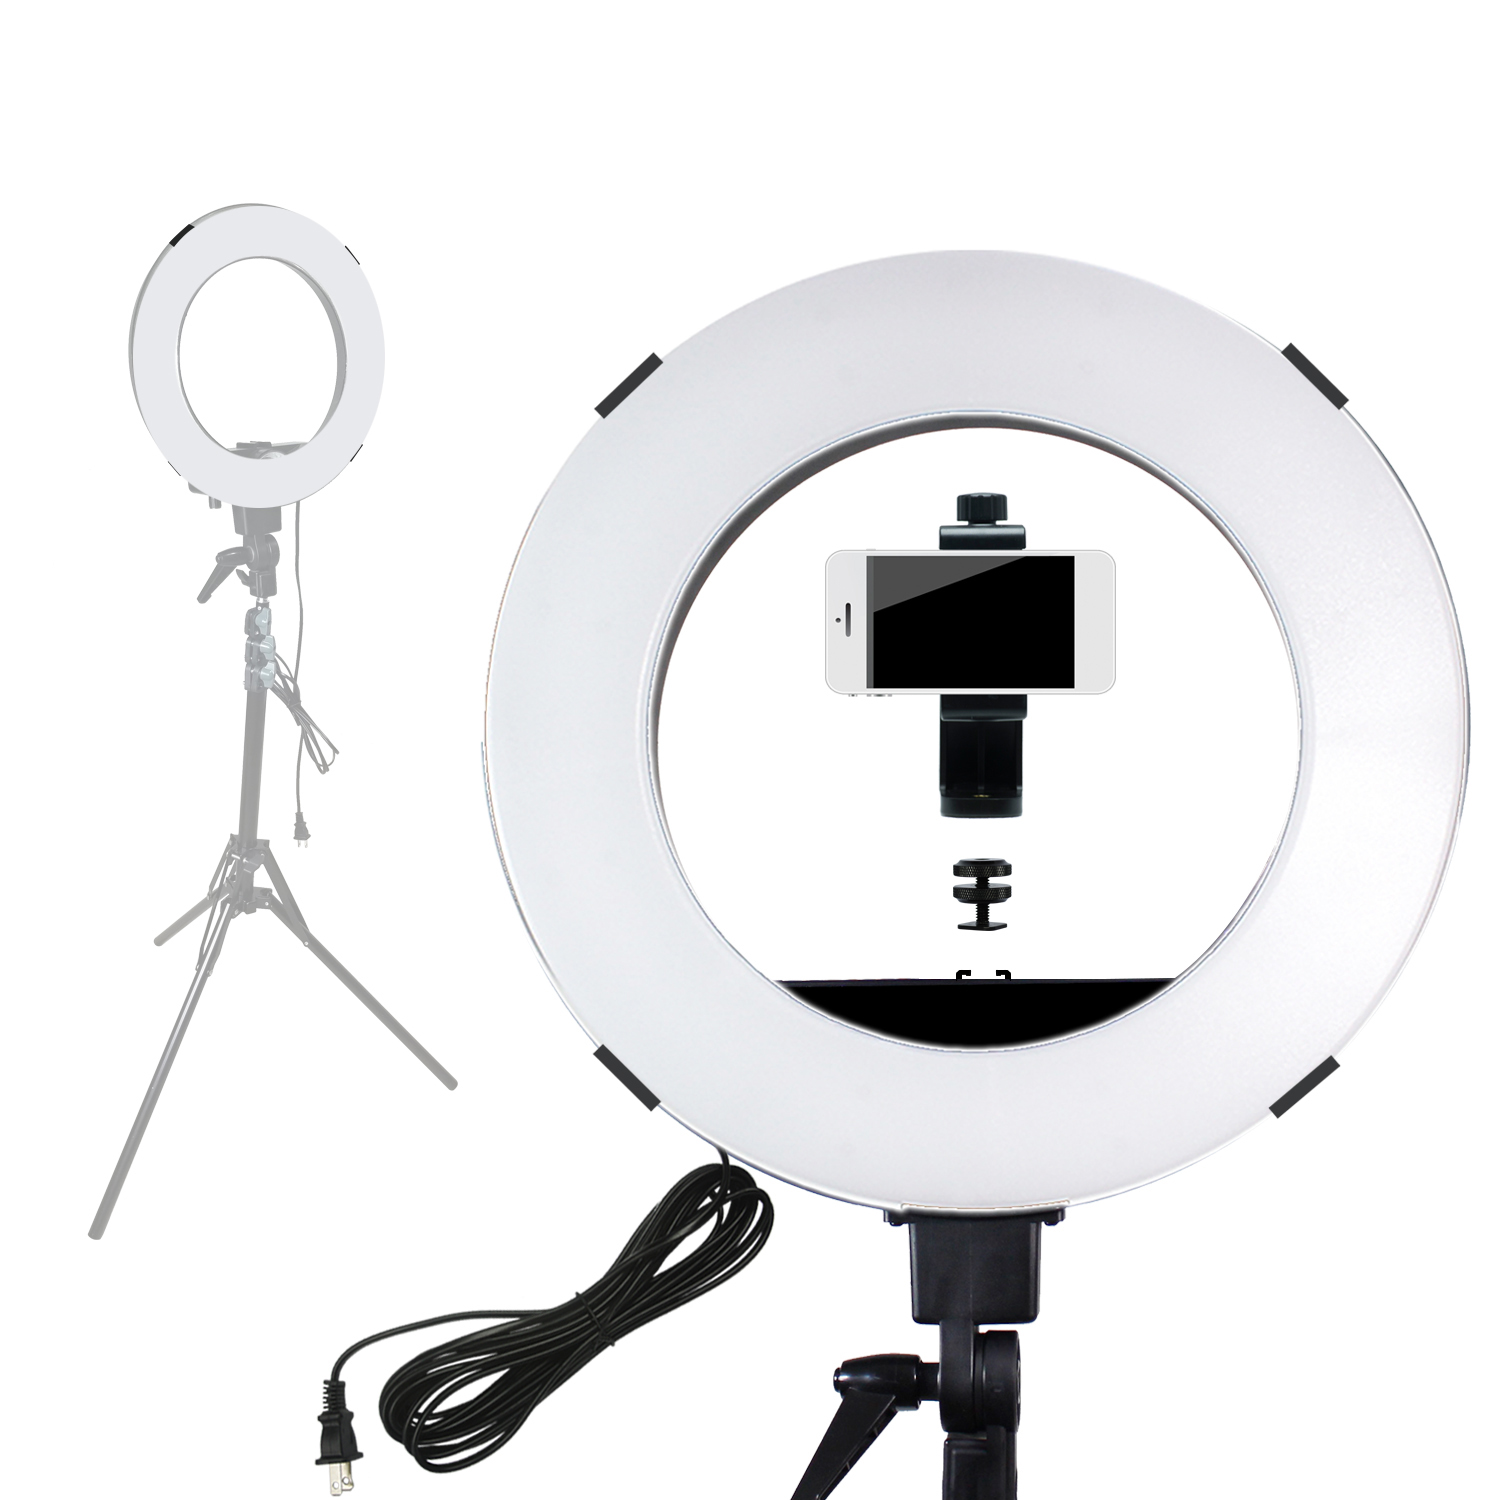 "Loadstone Studio 12"" Dimmable Fluorescent Round Ring Light, Continuous Lighting Kit for Beauty Facial Shoot, Light Stand Tripod, Cell Phone Spring Clip Holder, Photo Studio, WMLS4547"